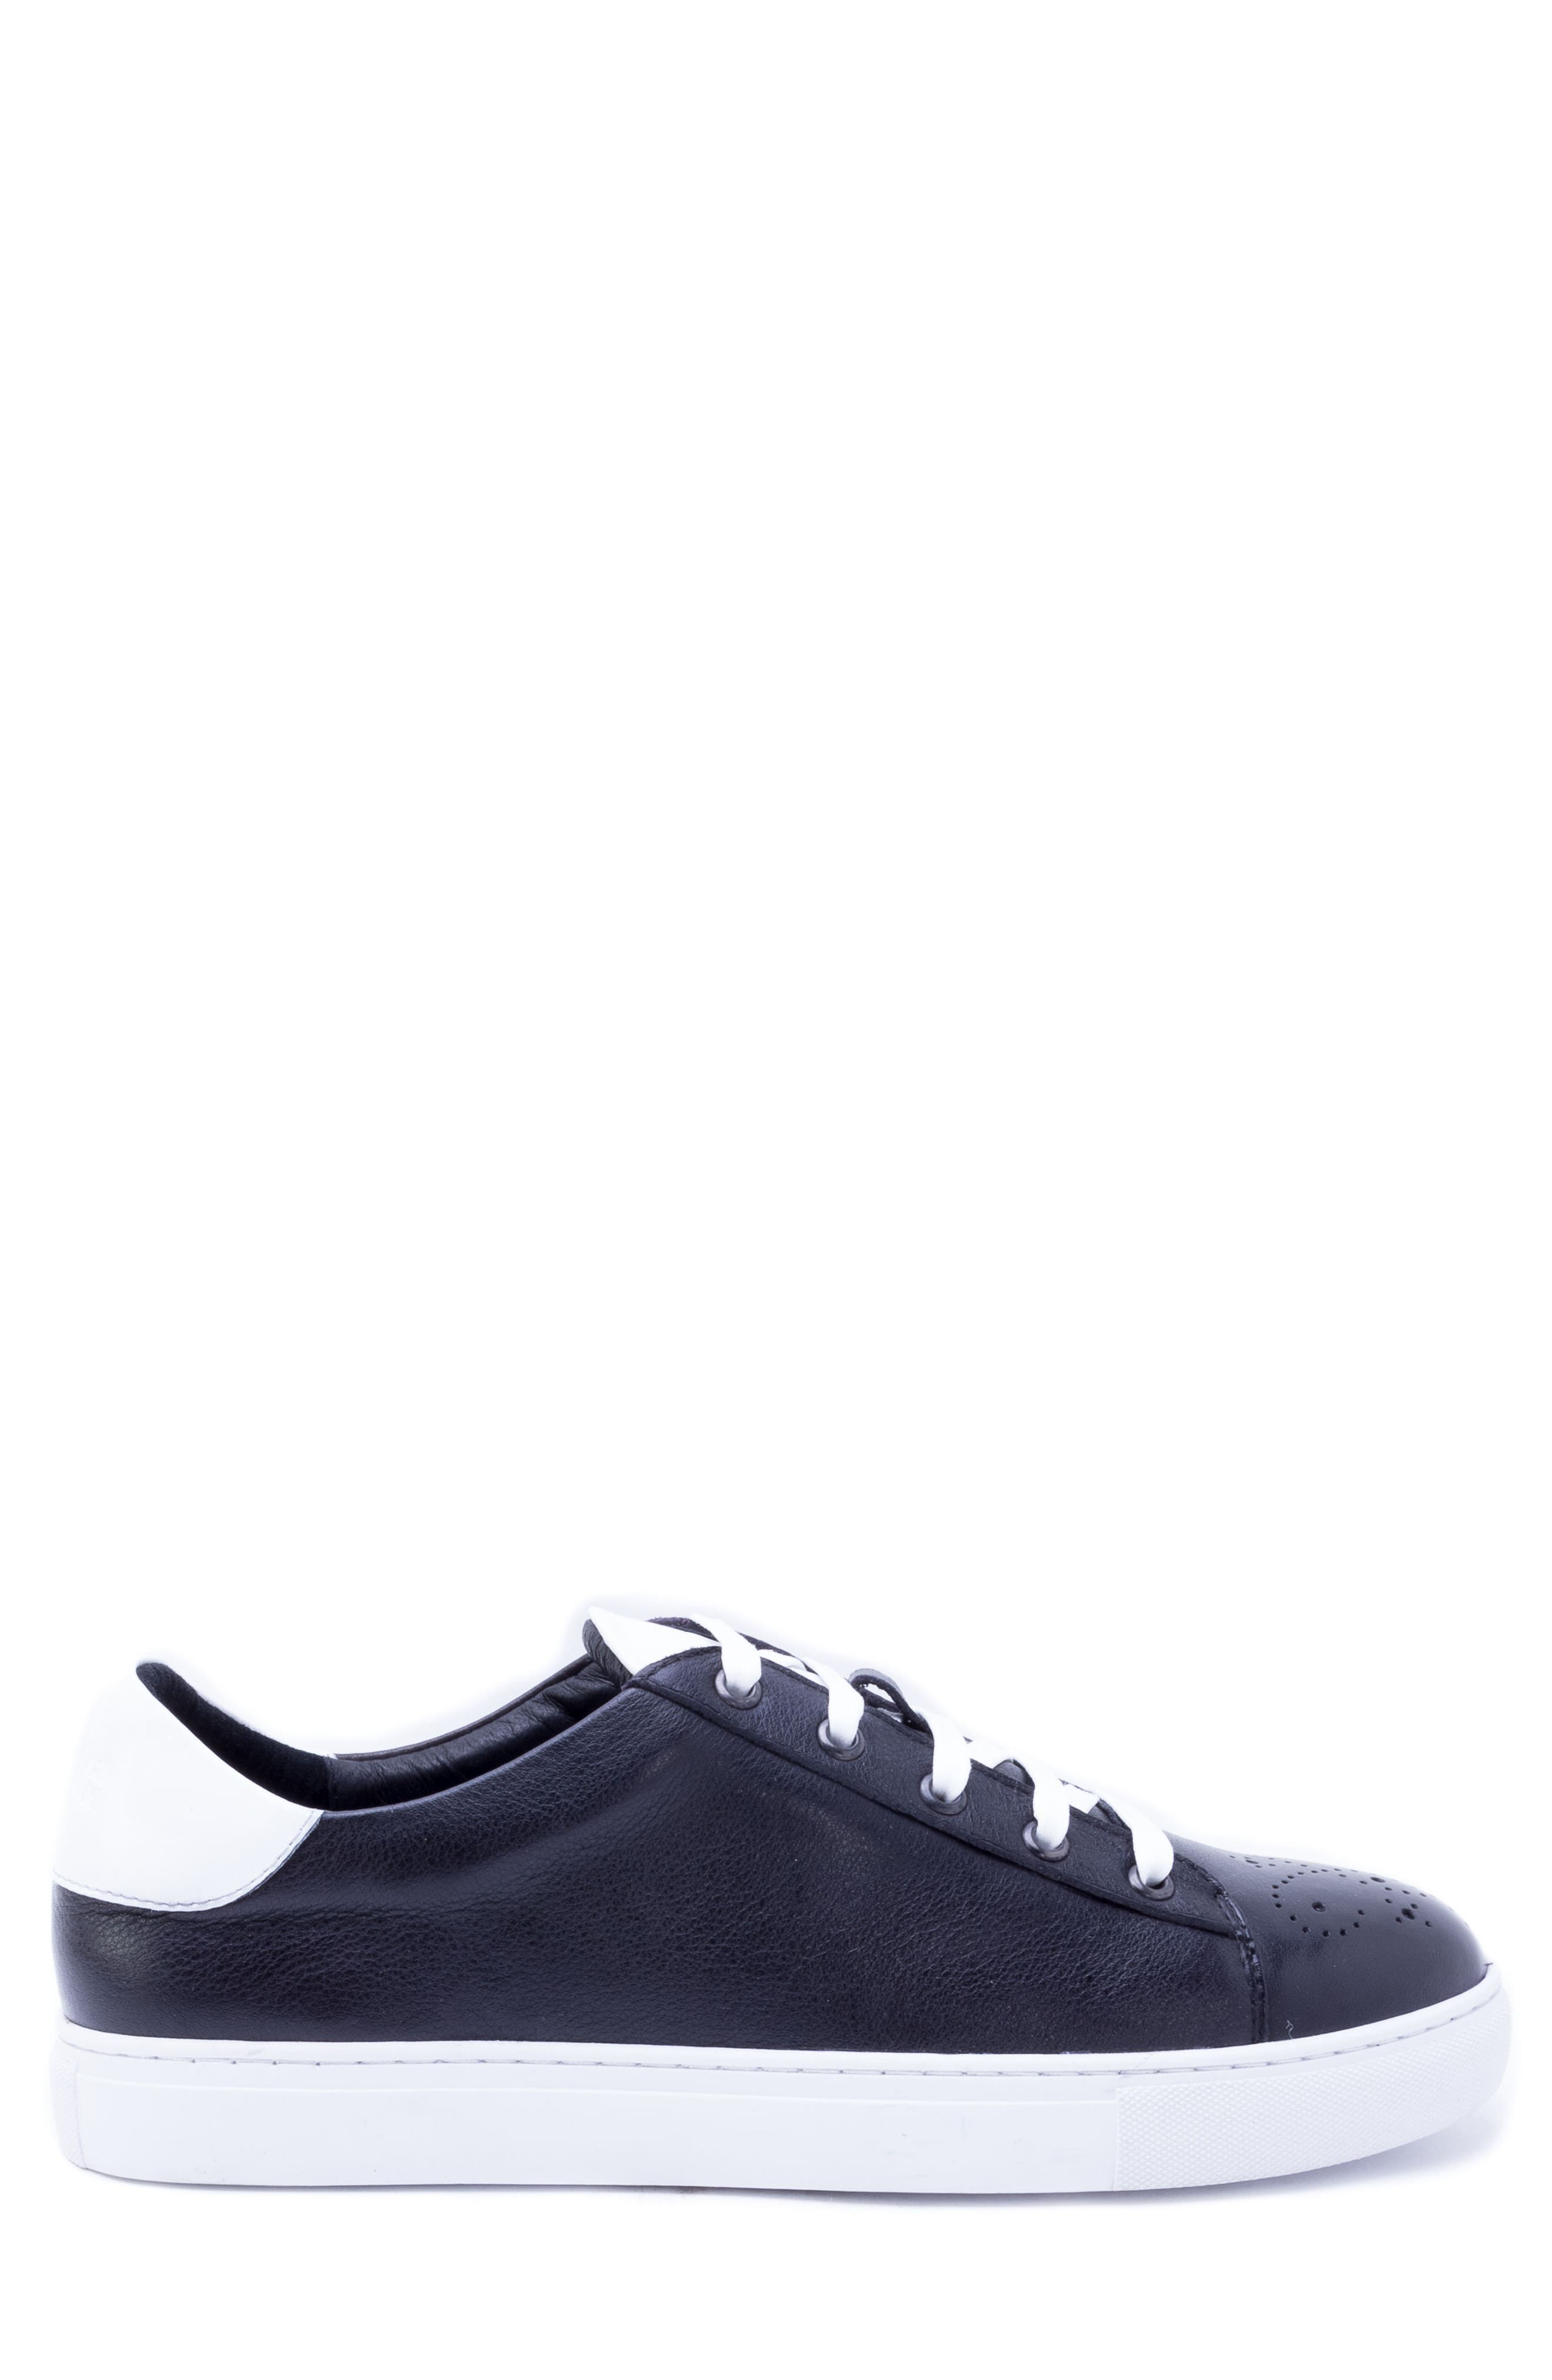 Sinatra Sneaker,                             Alternate thumbnail 3, color,                             BLACK LEATHER